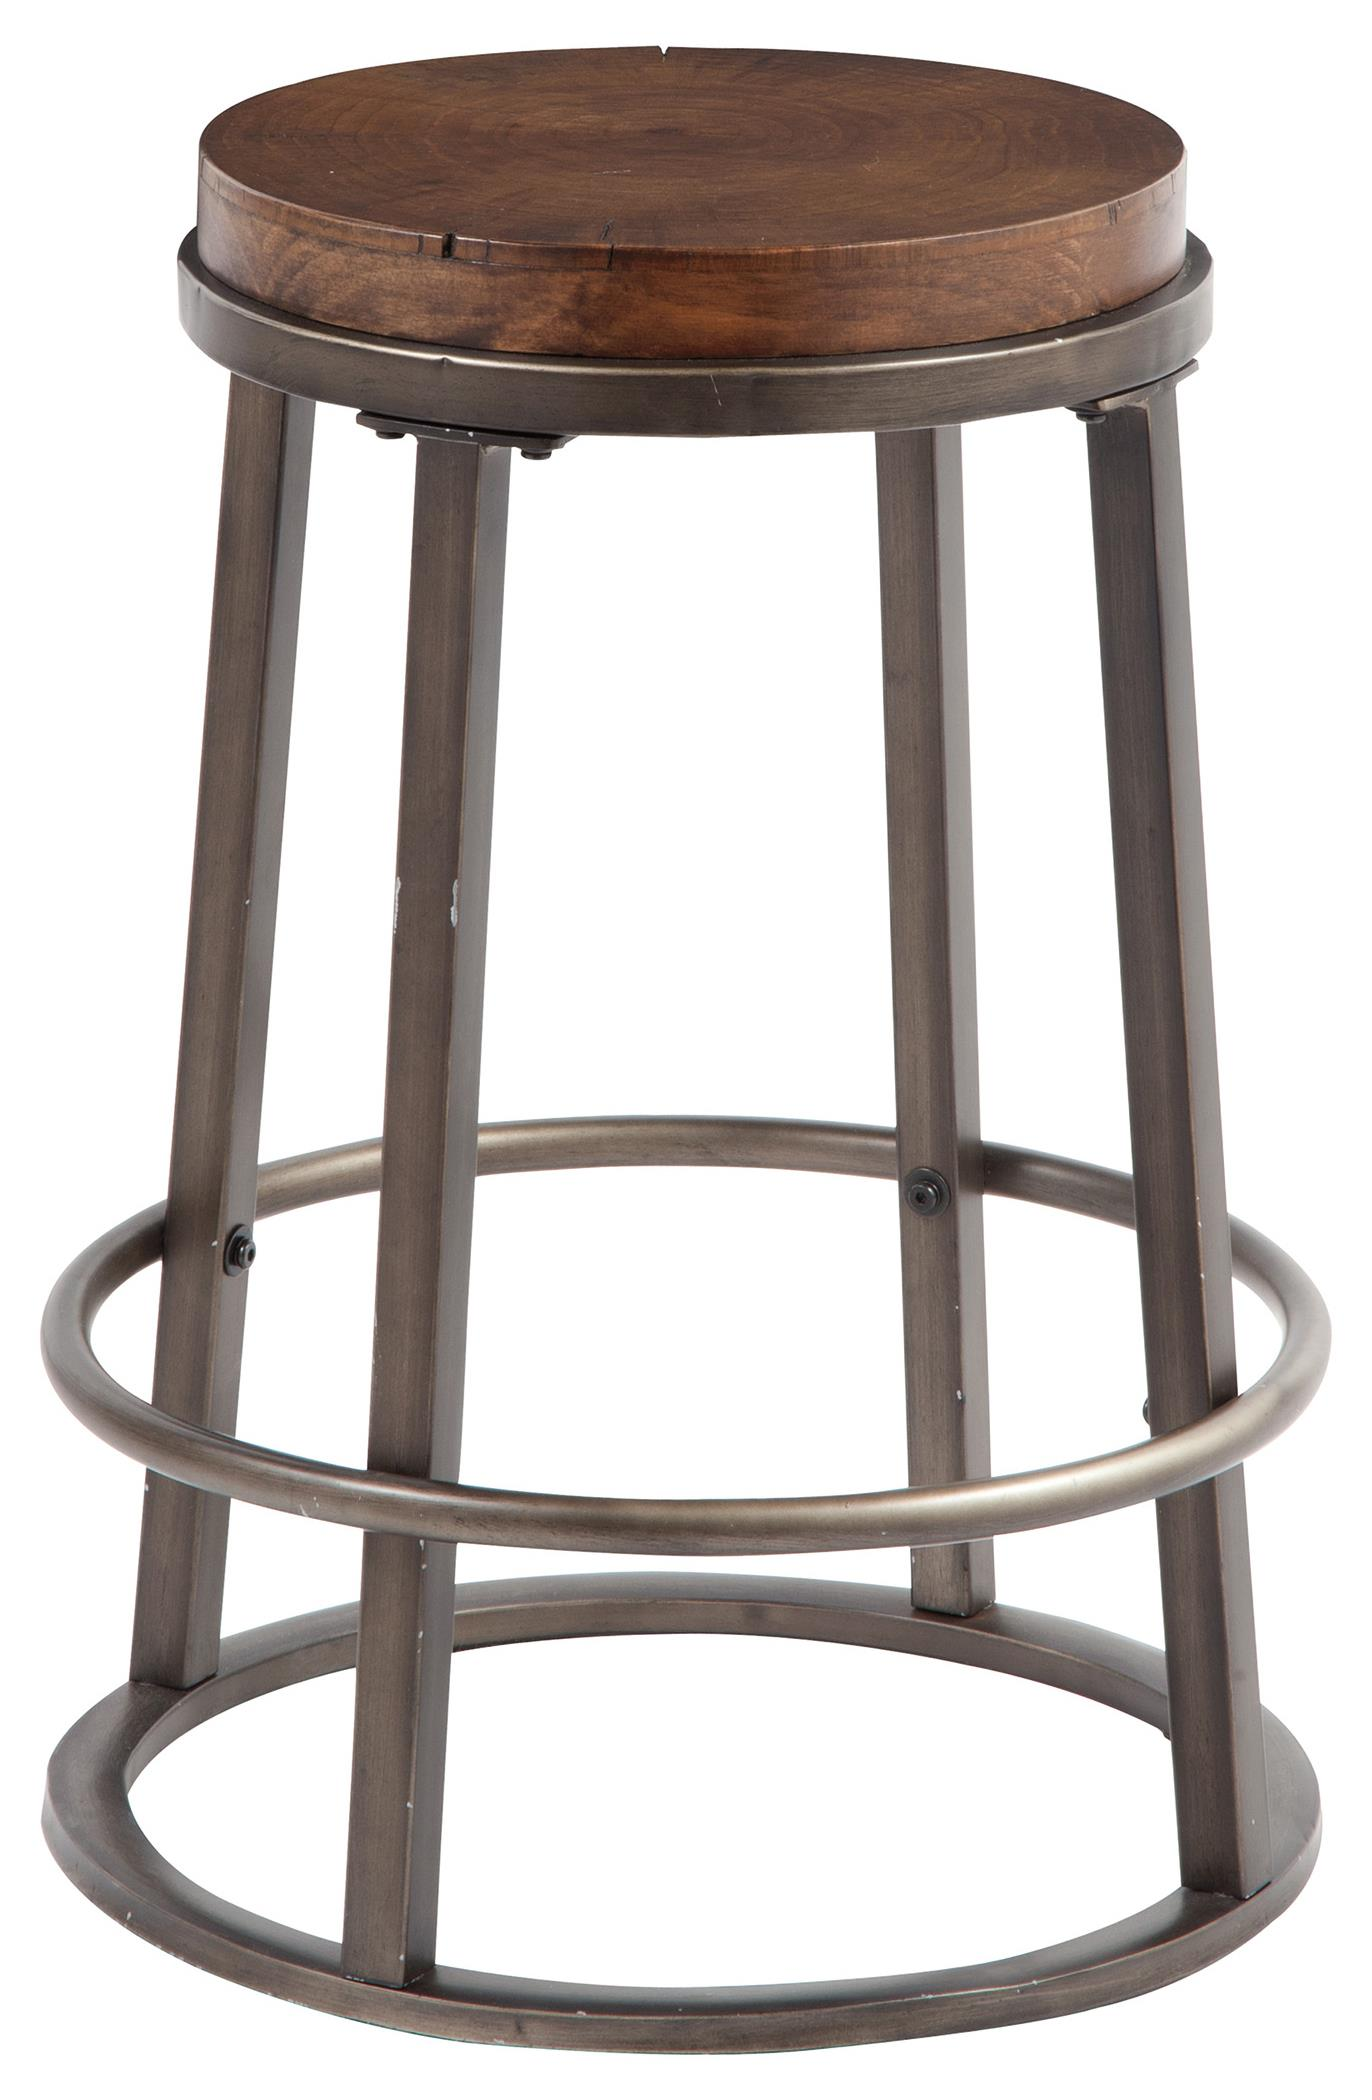 Signature Design by Ashley Glosco Stool - Item Number: D548-324